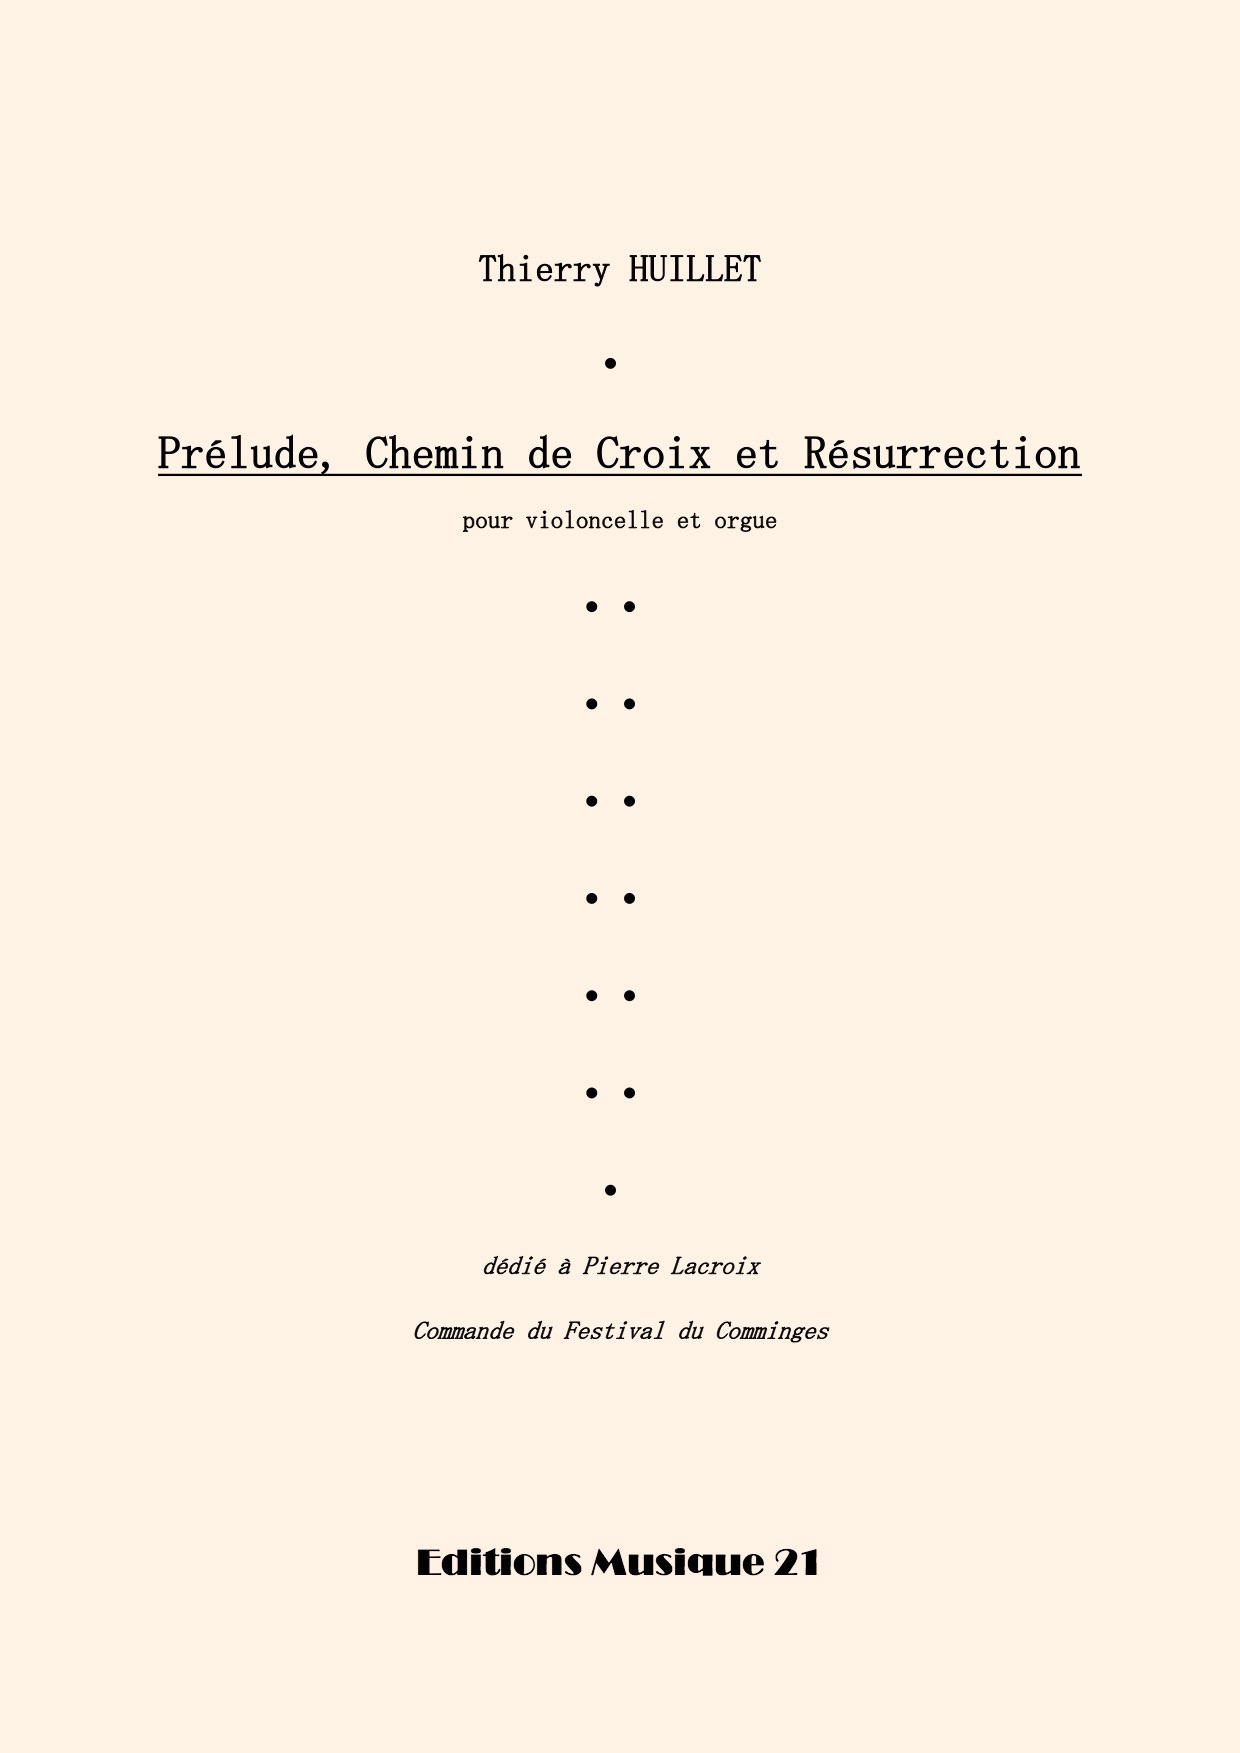 Thierry HUILLET – Prélude, Chemin De Croix Et Résurrection, For Cello And Organ (or Piano)